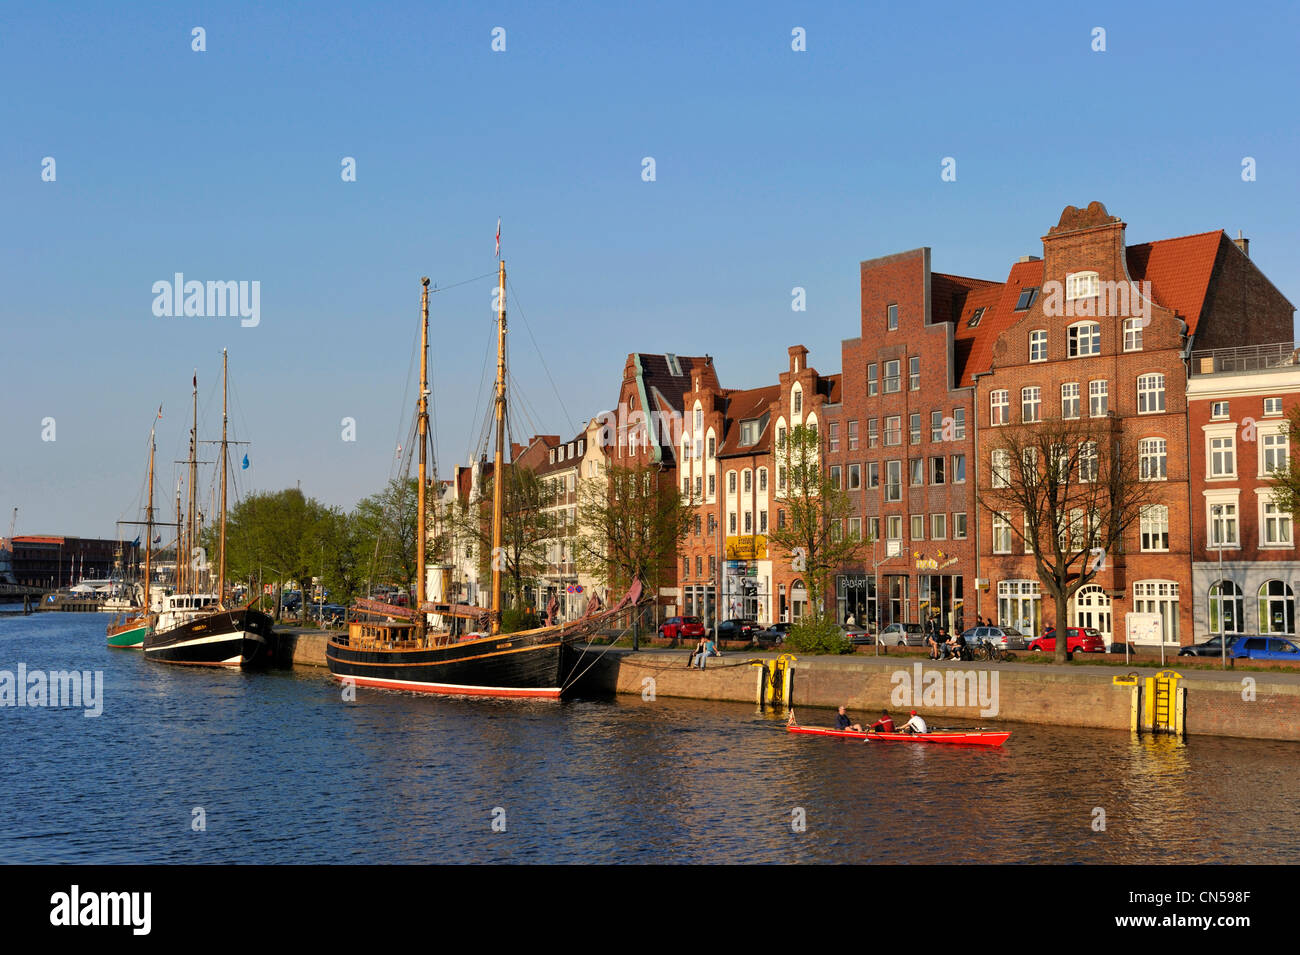 Germany, Schleswig Holstein, Lubeck, listed as World Heritage by UNESCO - Stock Image